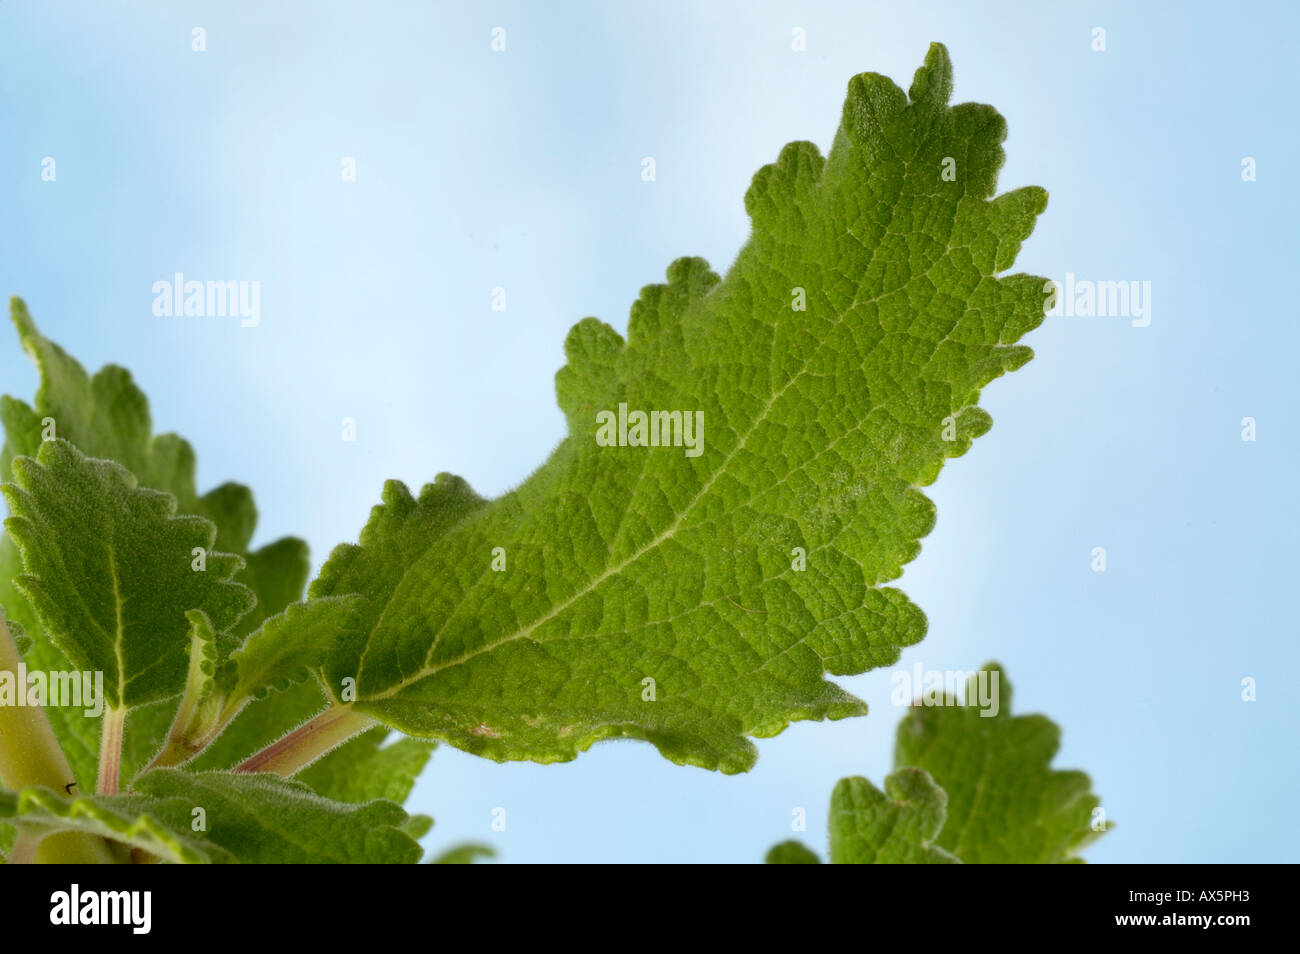 Musk Herb Plants Stock Photos & Musk Herb Plants Stock